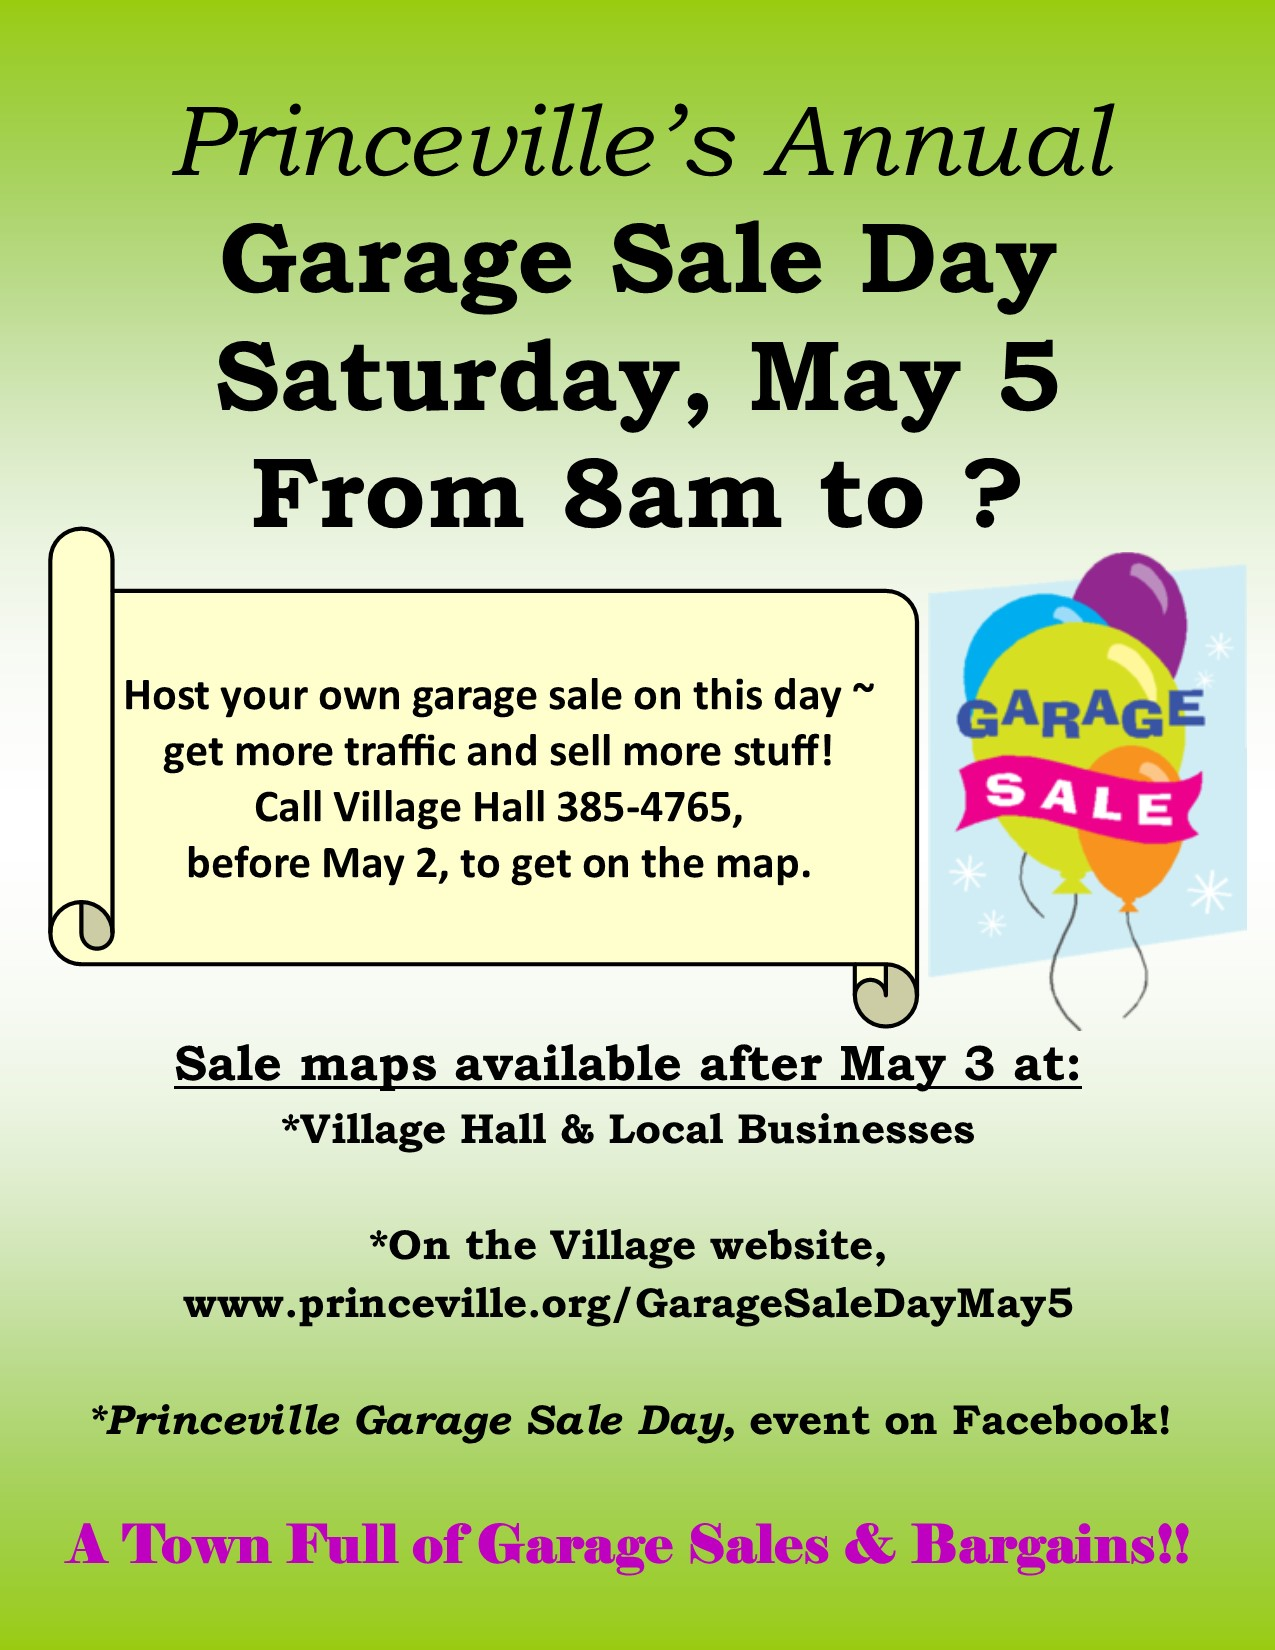 townwide garage sale flyer 2018 the village of princeville illinois